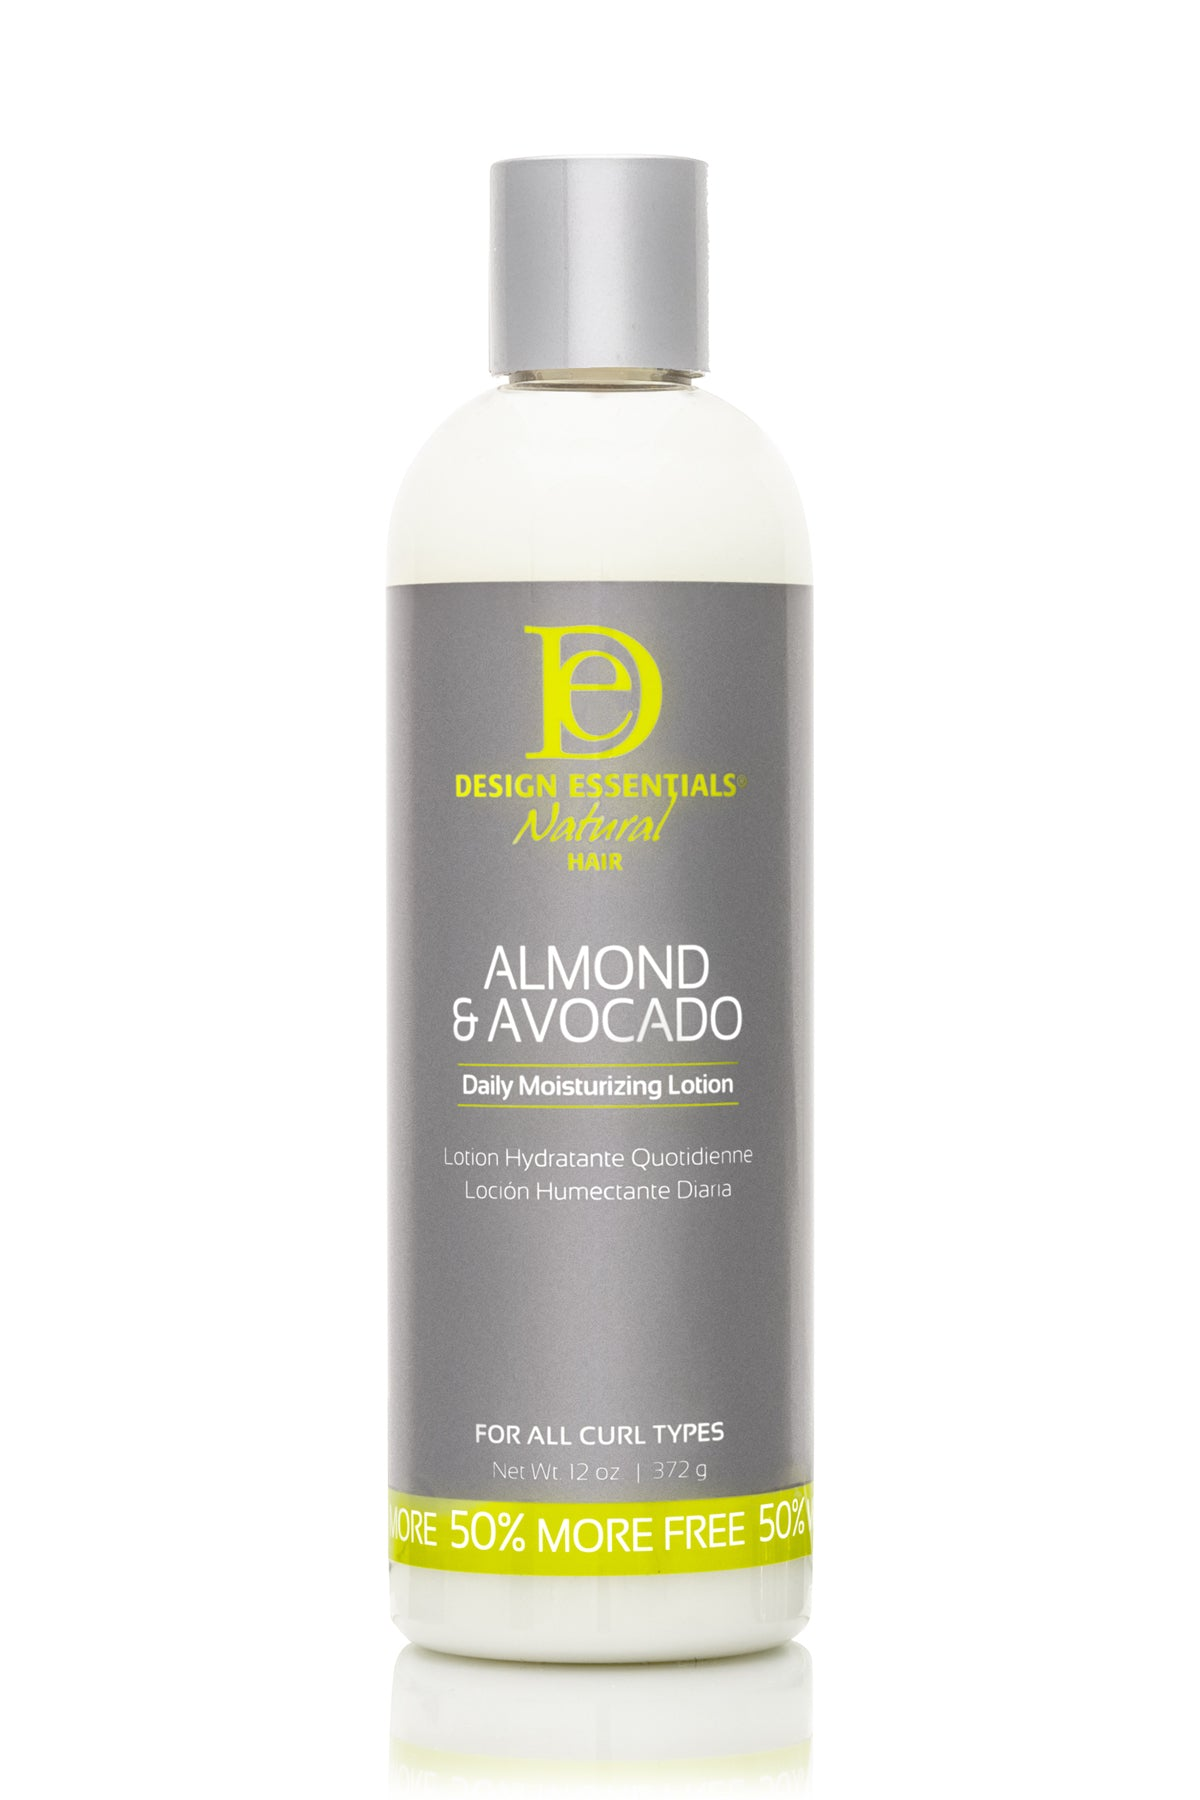 Design Essentials- Almond & Avocado Daily Moisturizing Lotion 12 oz